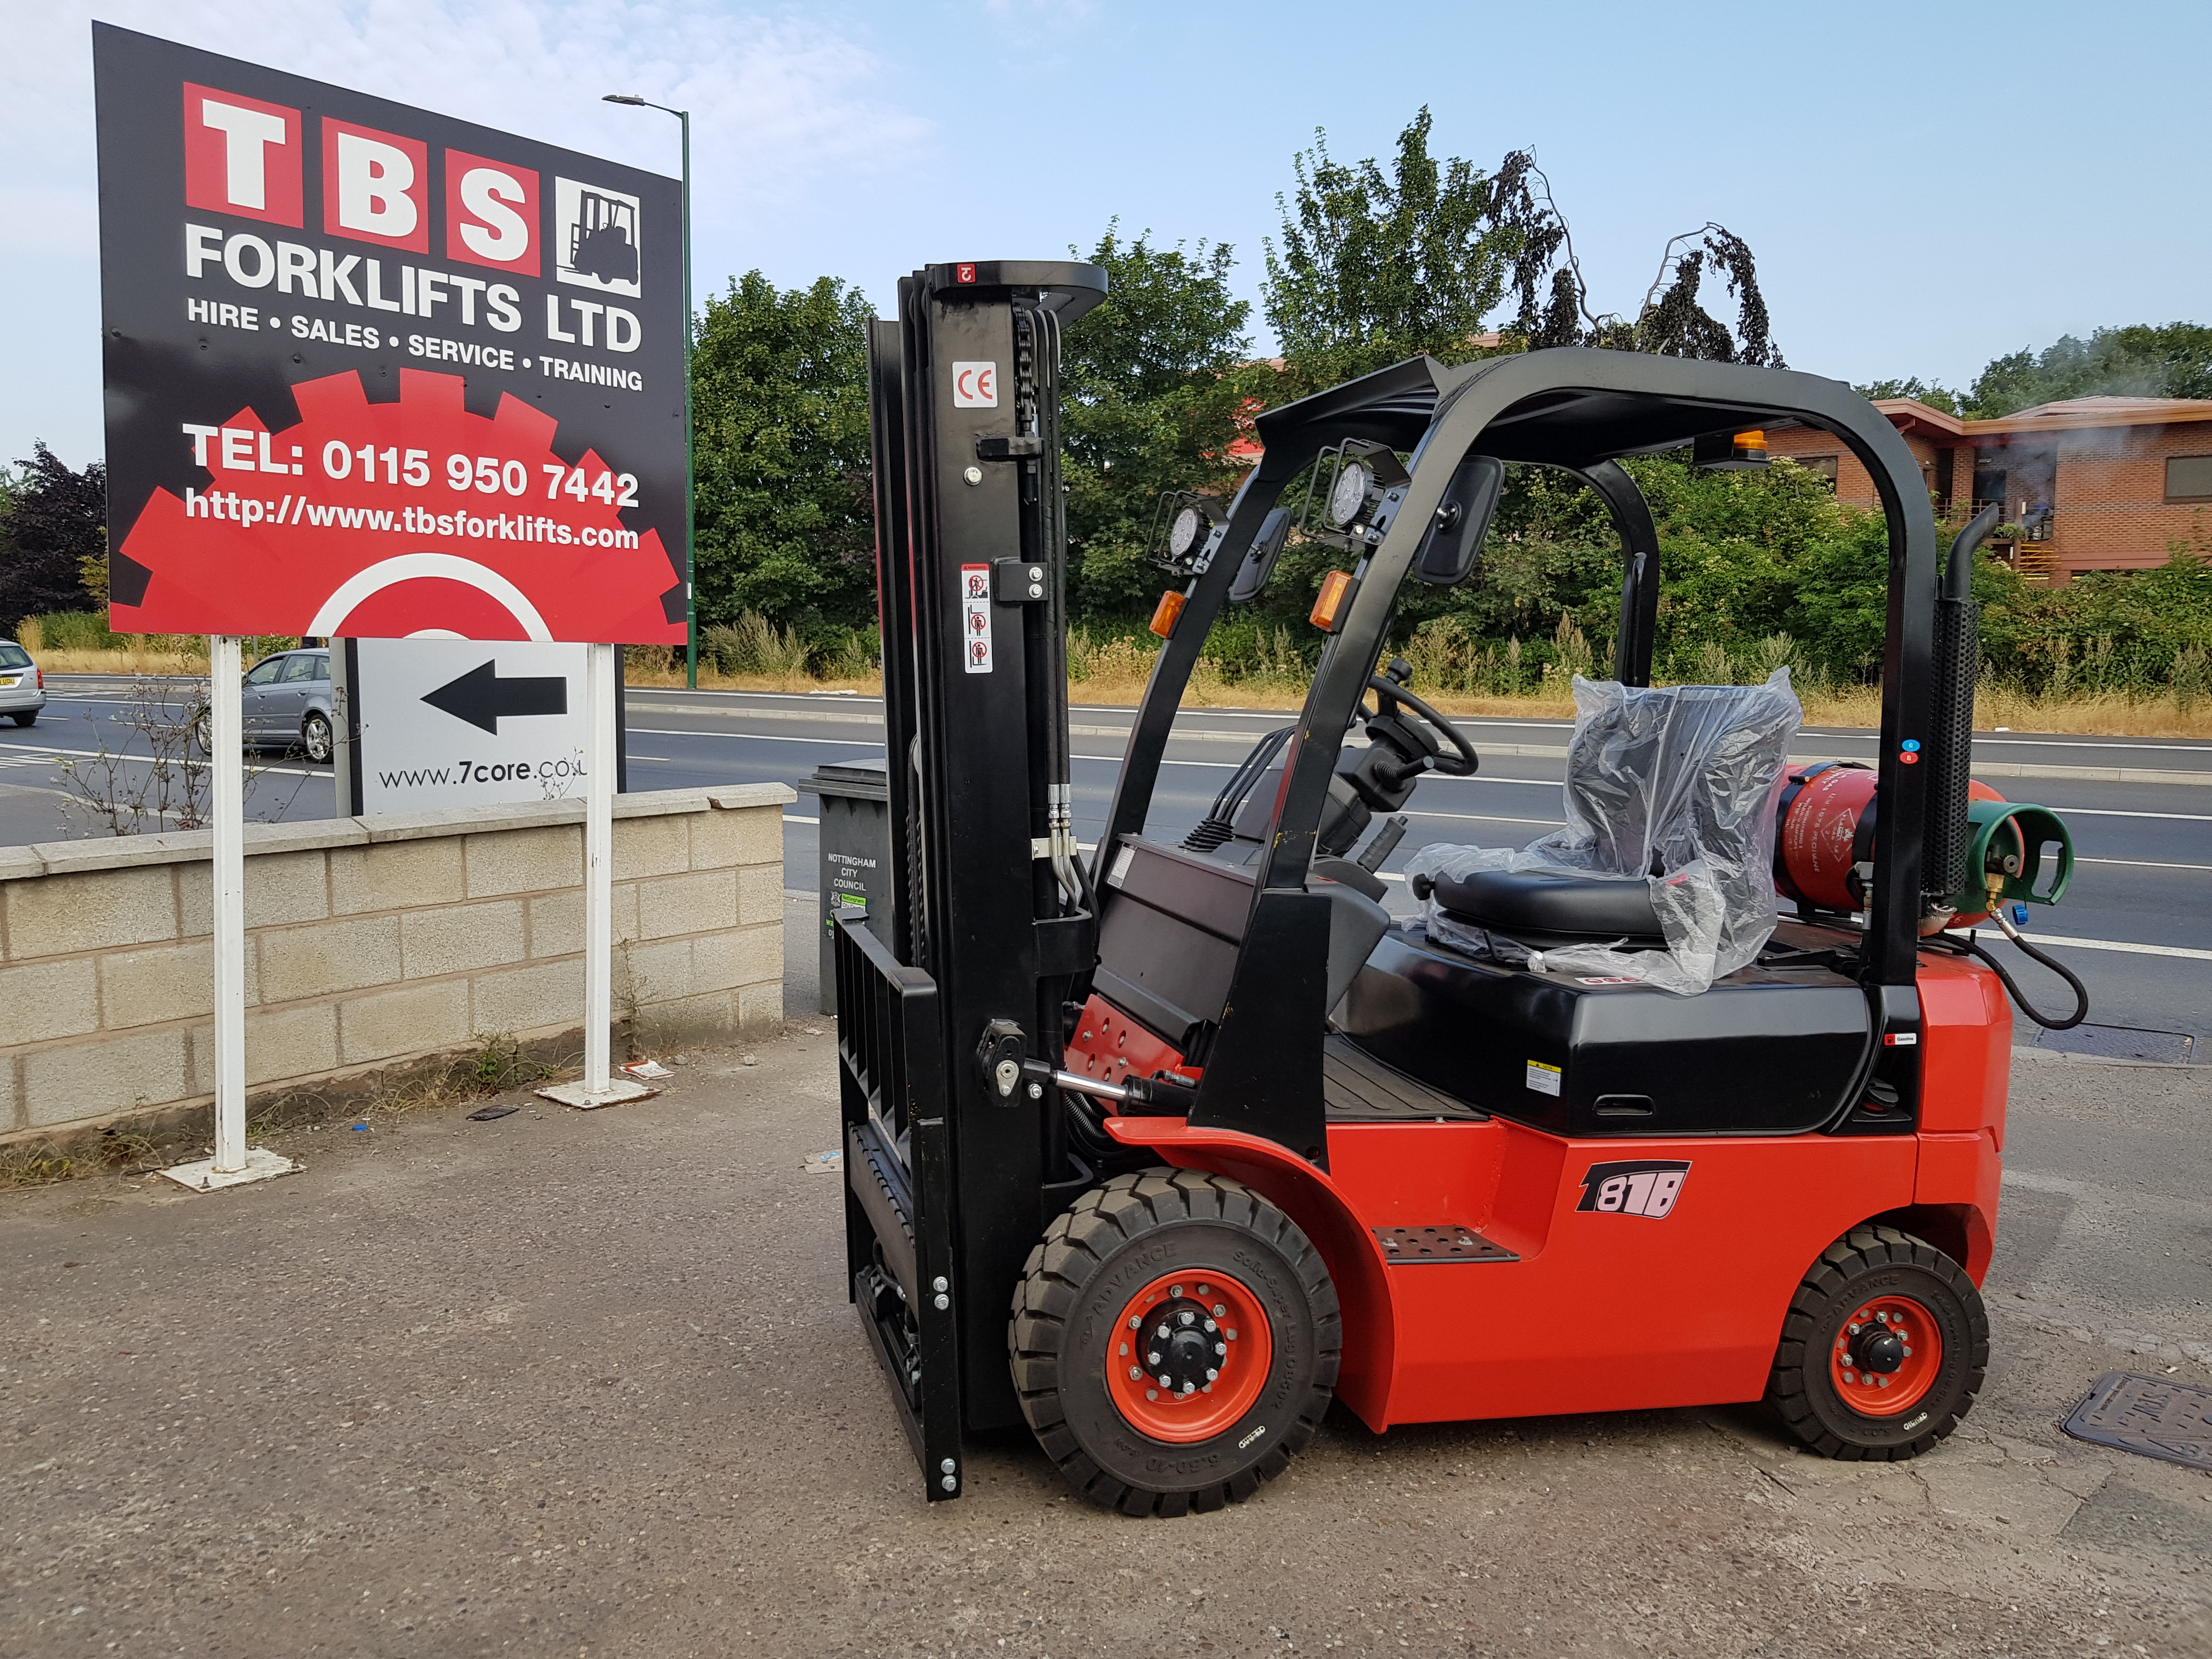 Forklift Main Picture